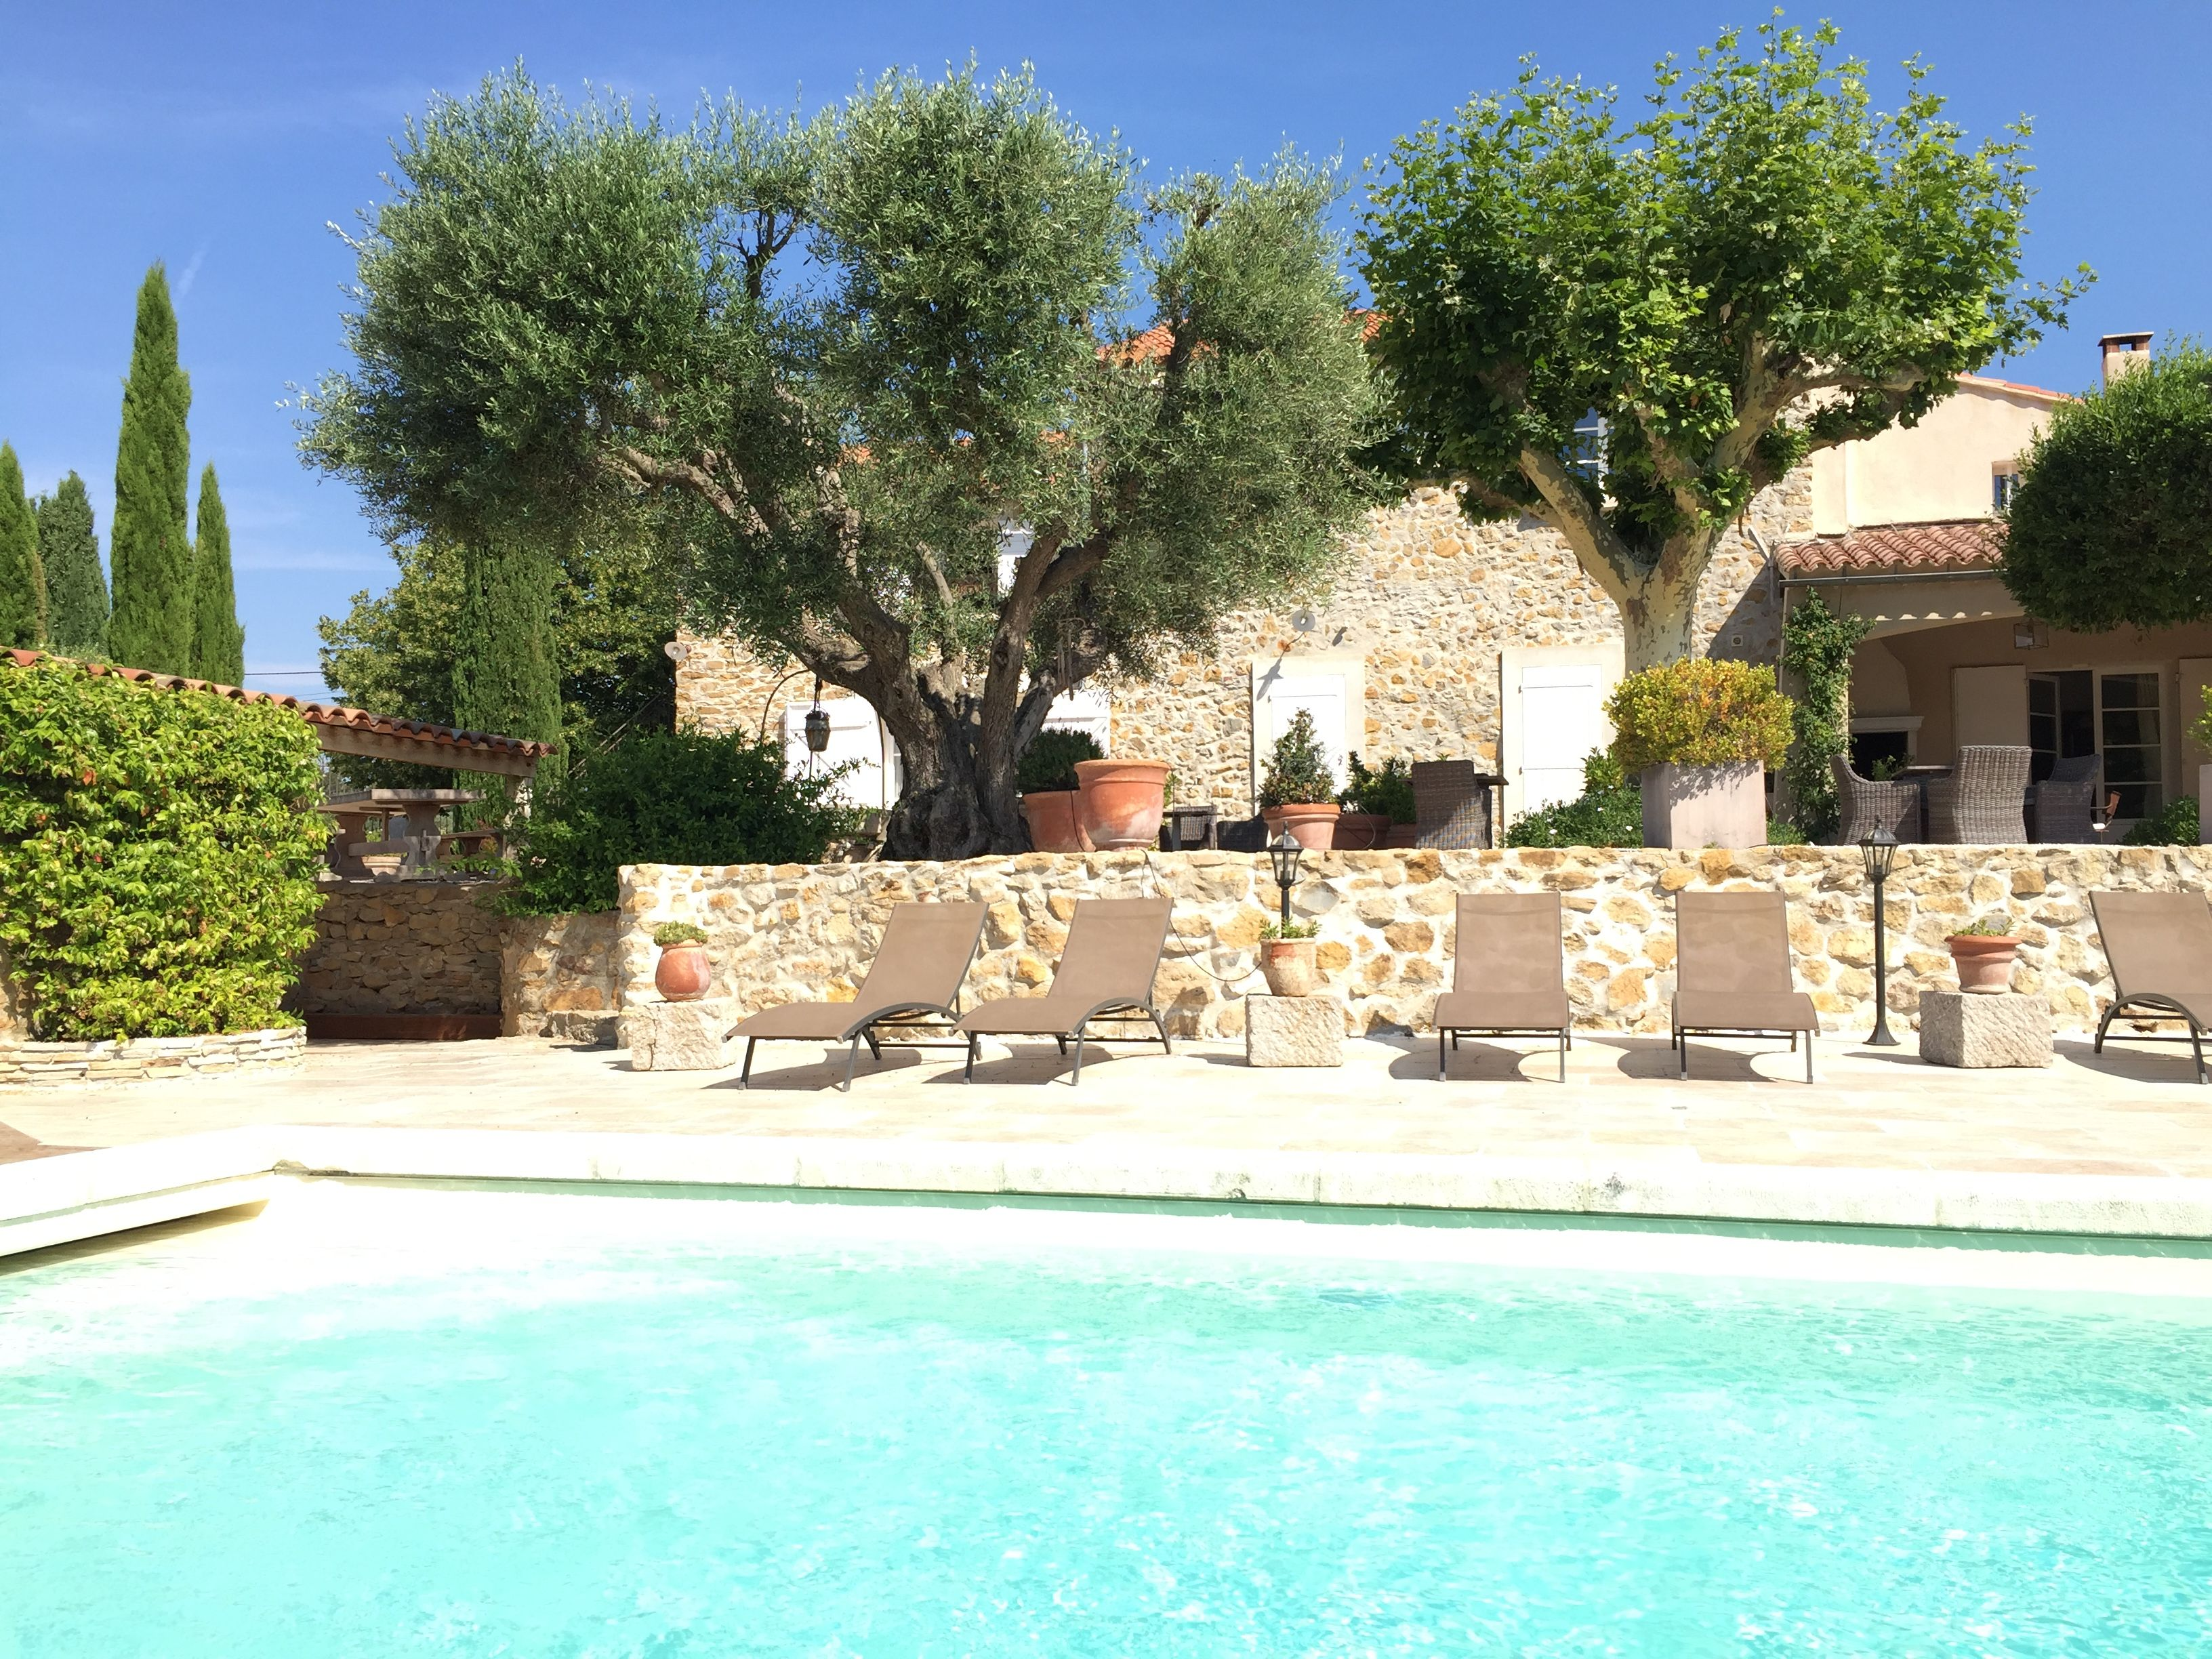 Bastide De Fonvieille Mediterranean Sea Bed And Breakfast Chambres D Hotes South Of France Saint Cyr Sur Me Chambre Hote Charme Bastide Bed And Breakfast